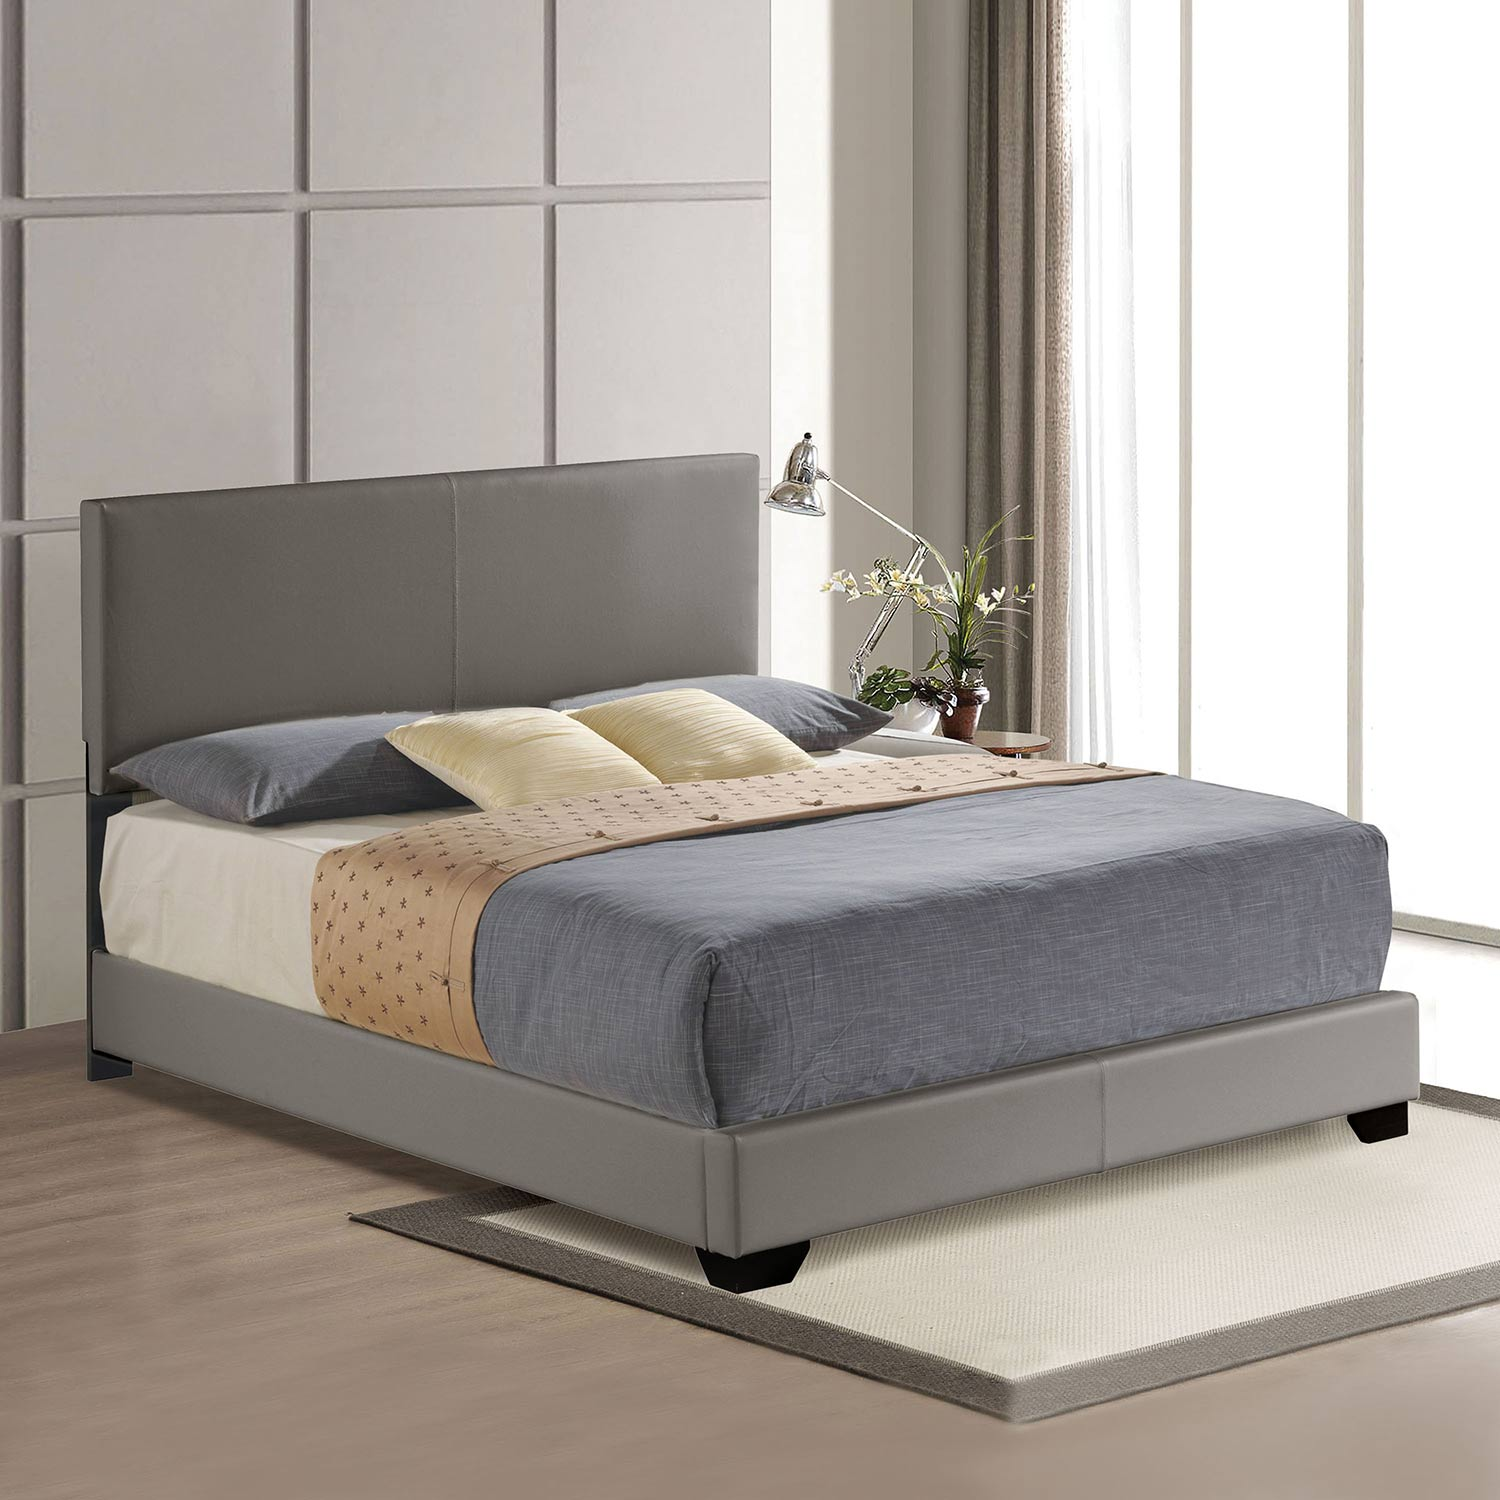 Acme Ireland III Panel Bed - Gray Vinyl